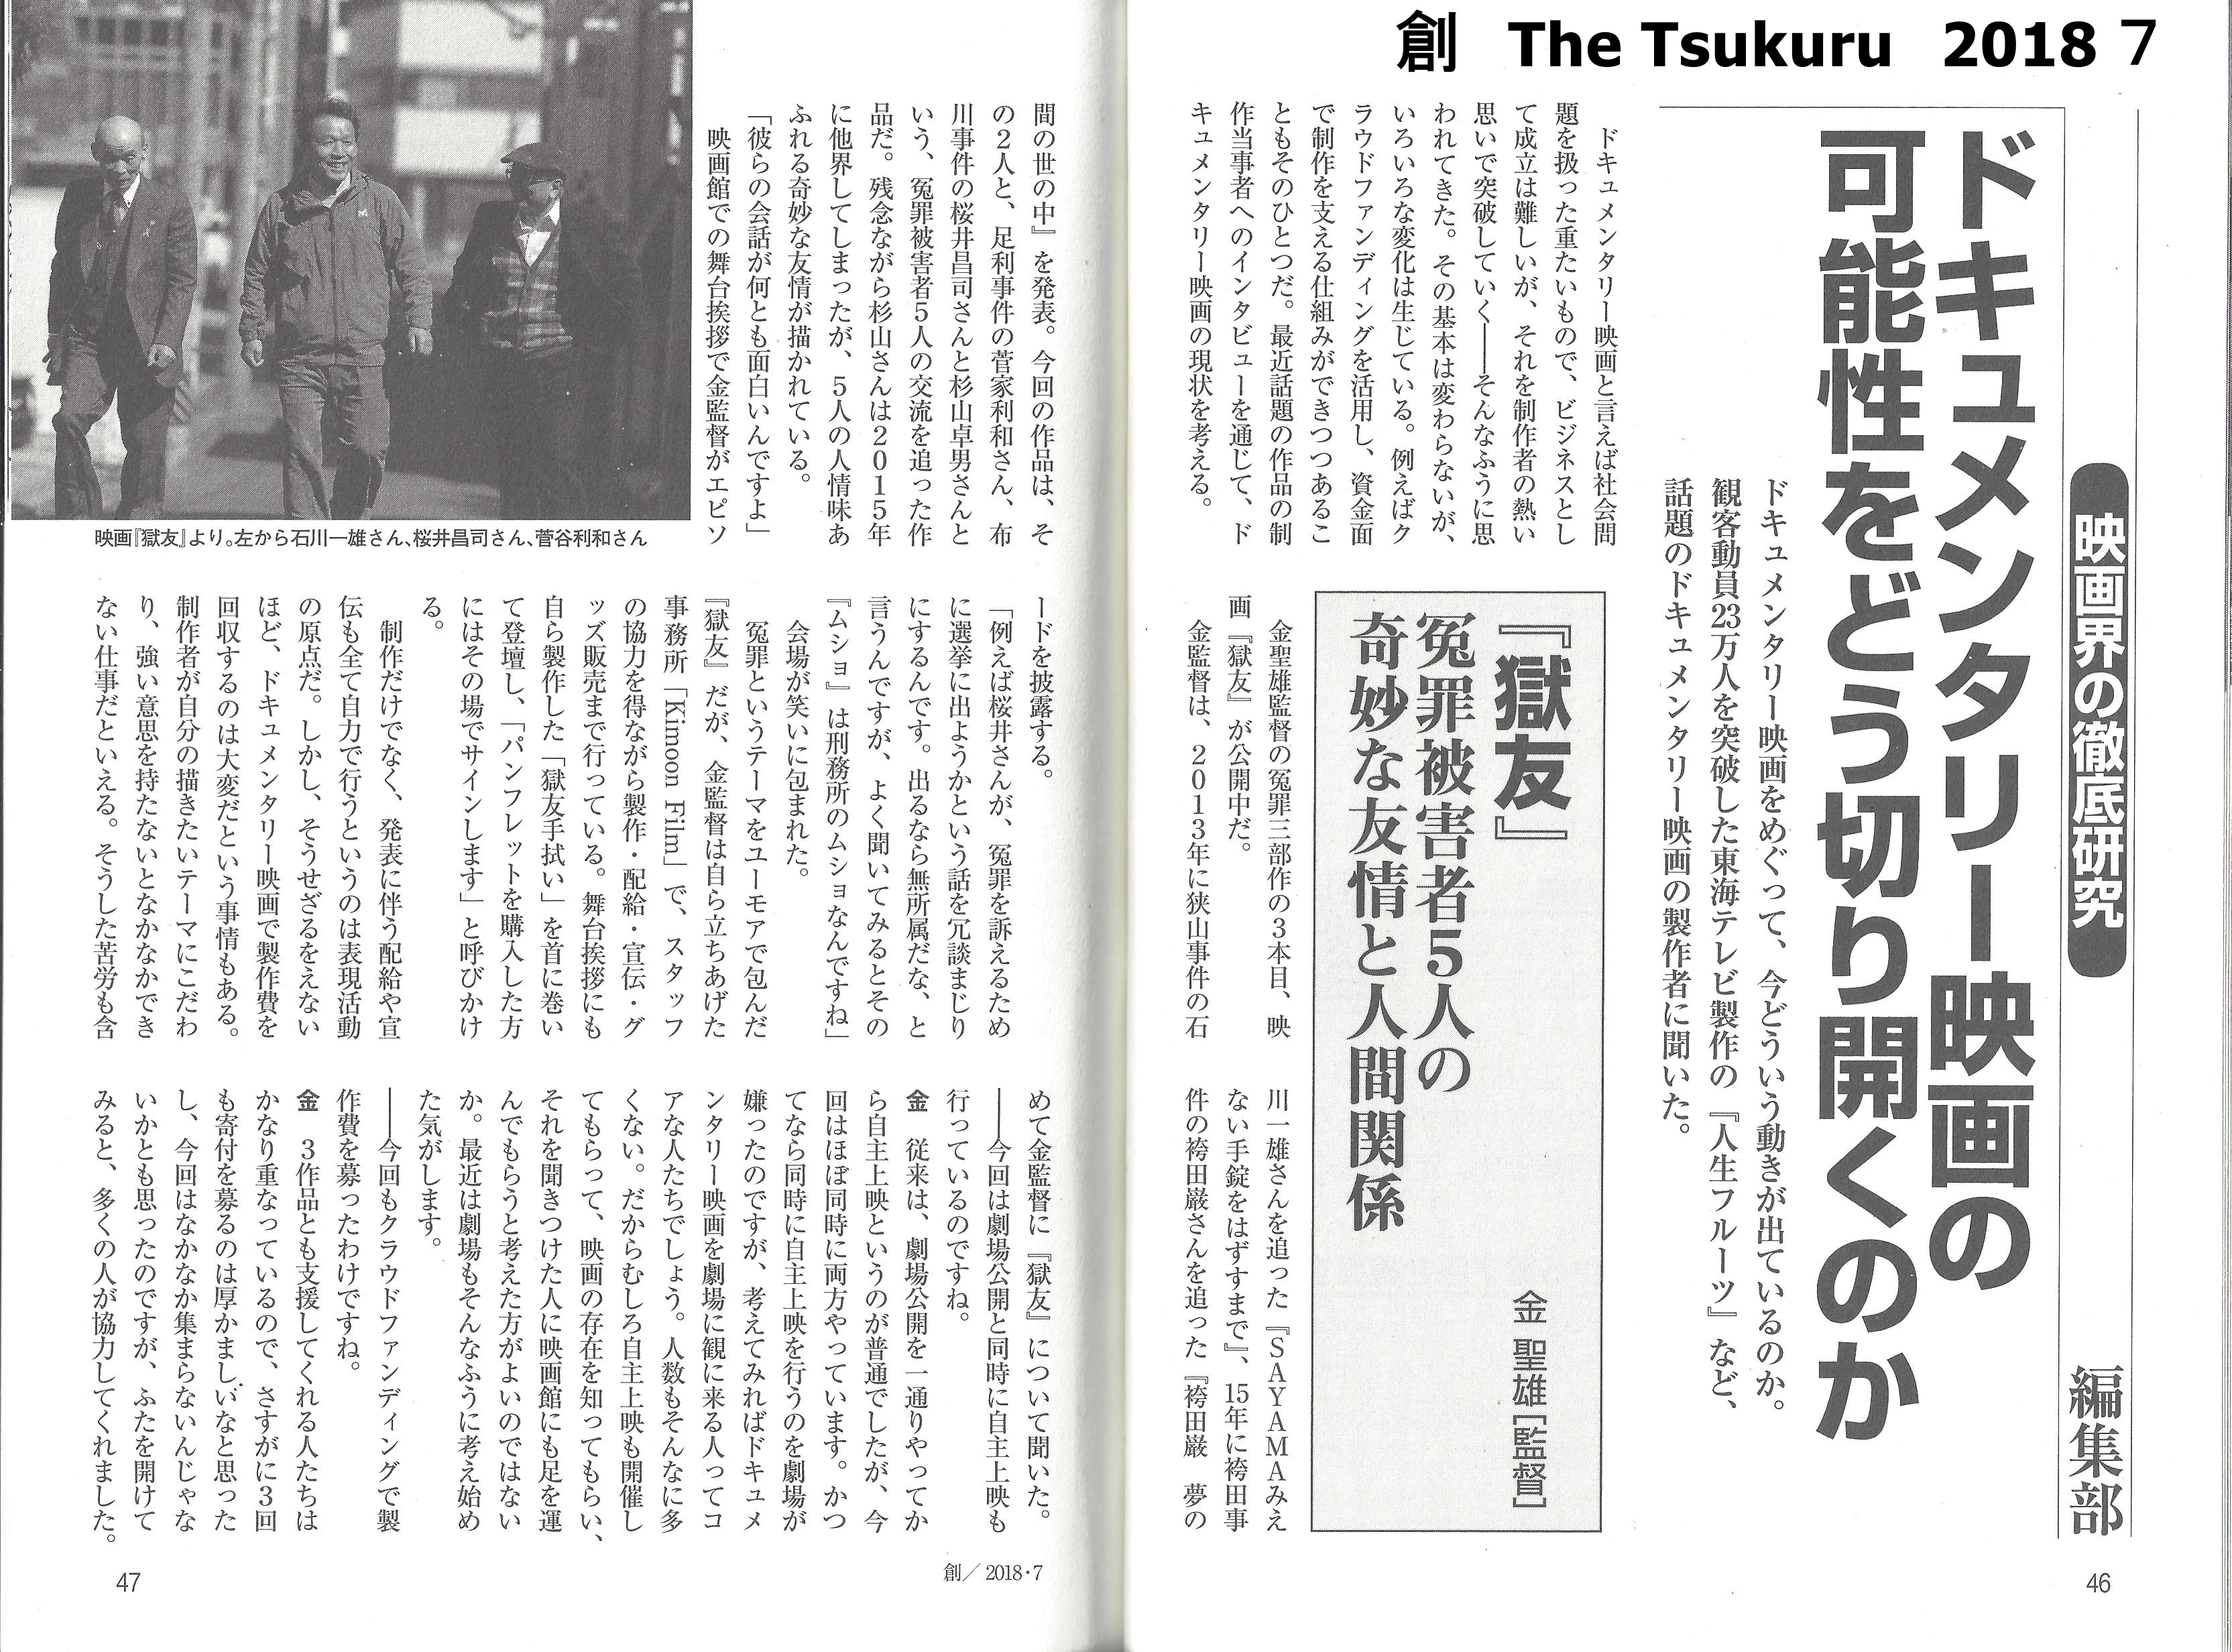 創 The Tsukuru 2018 7 ①